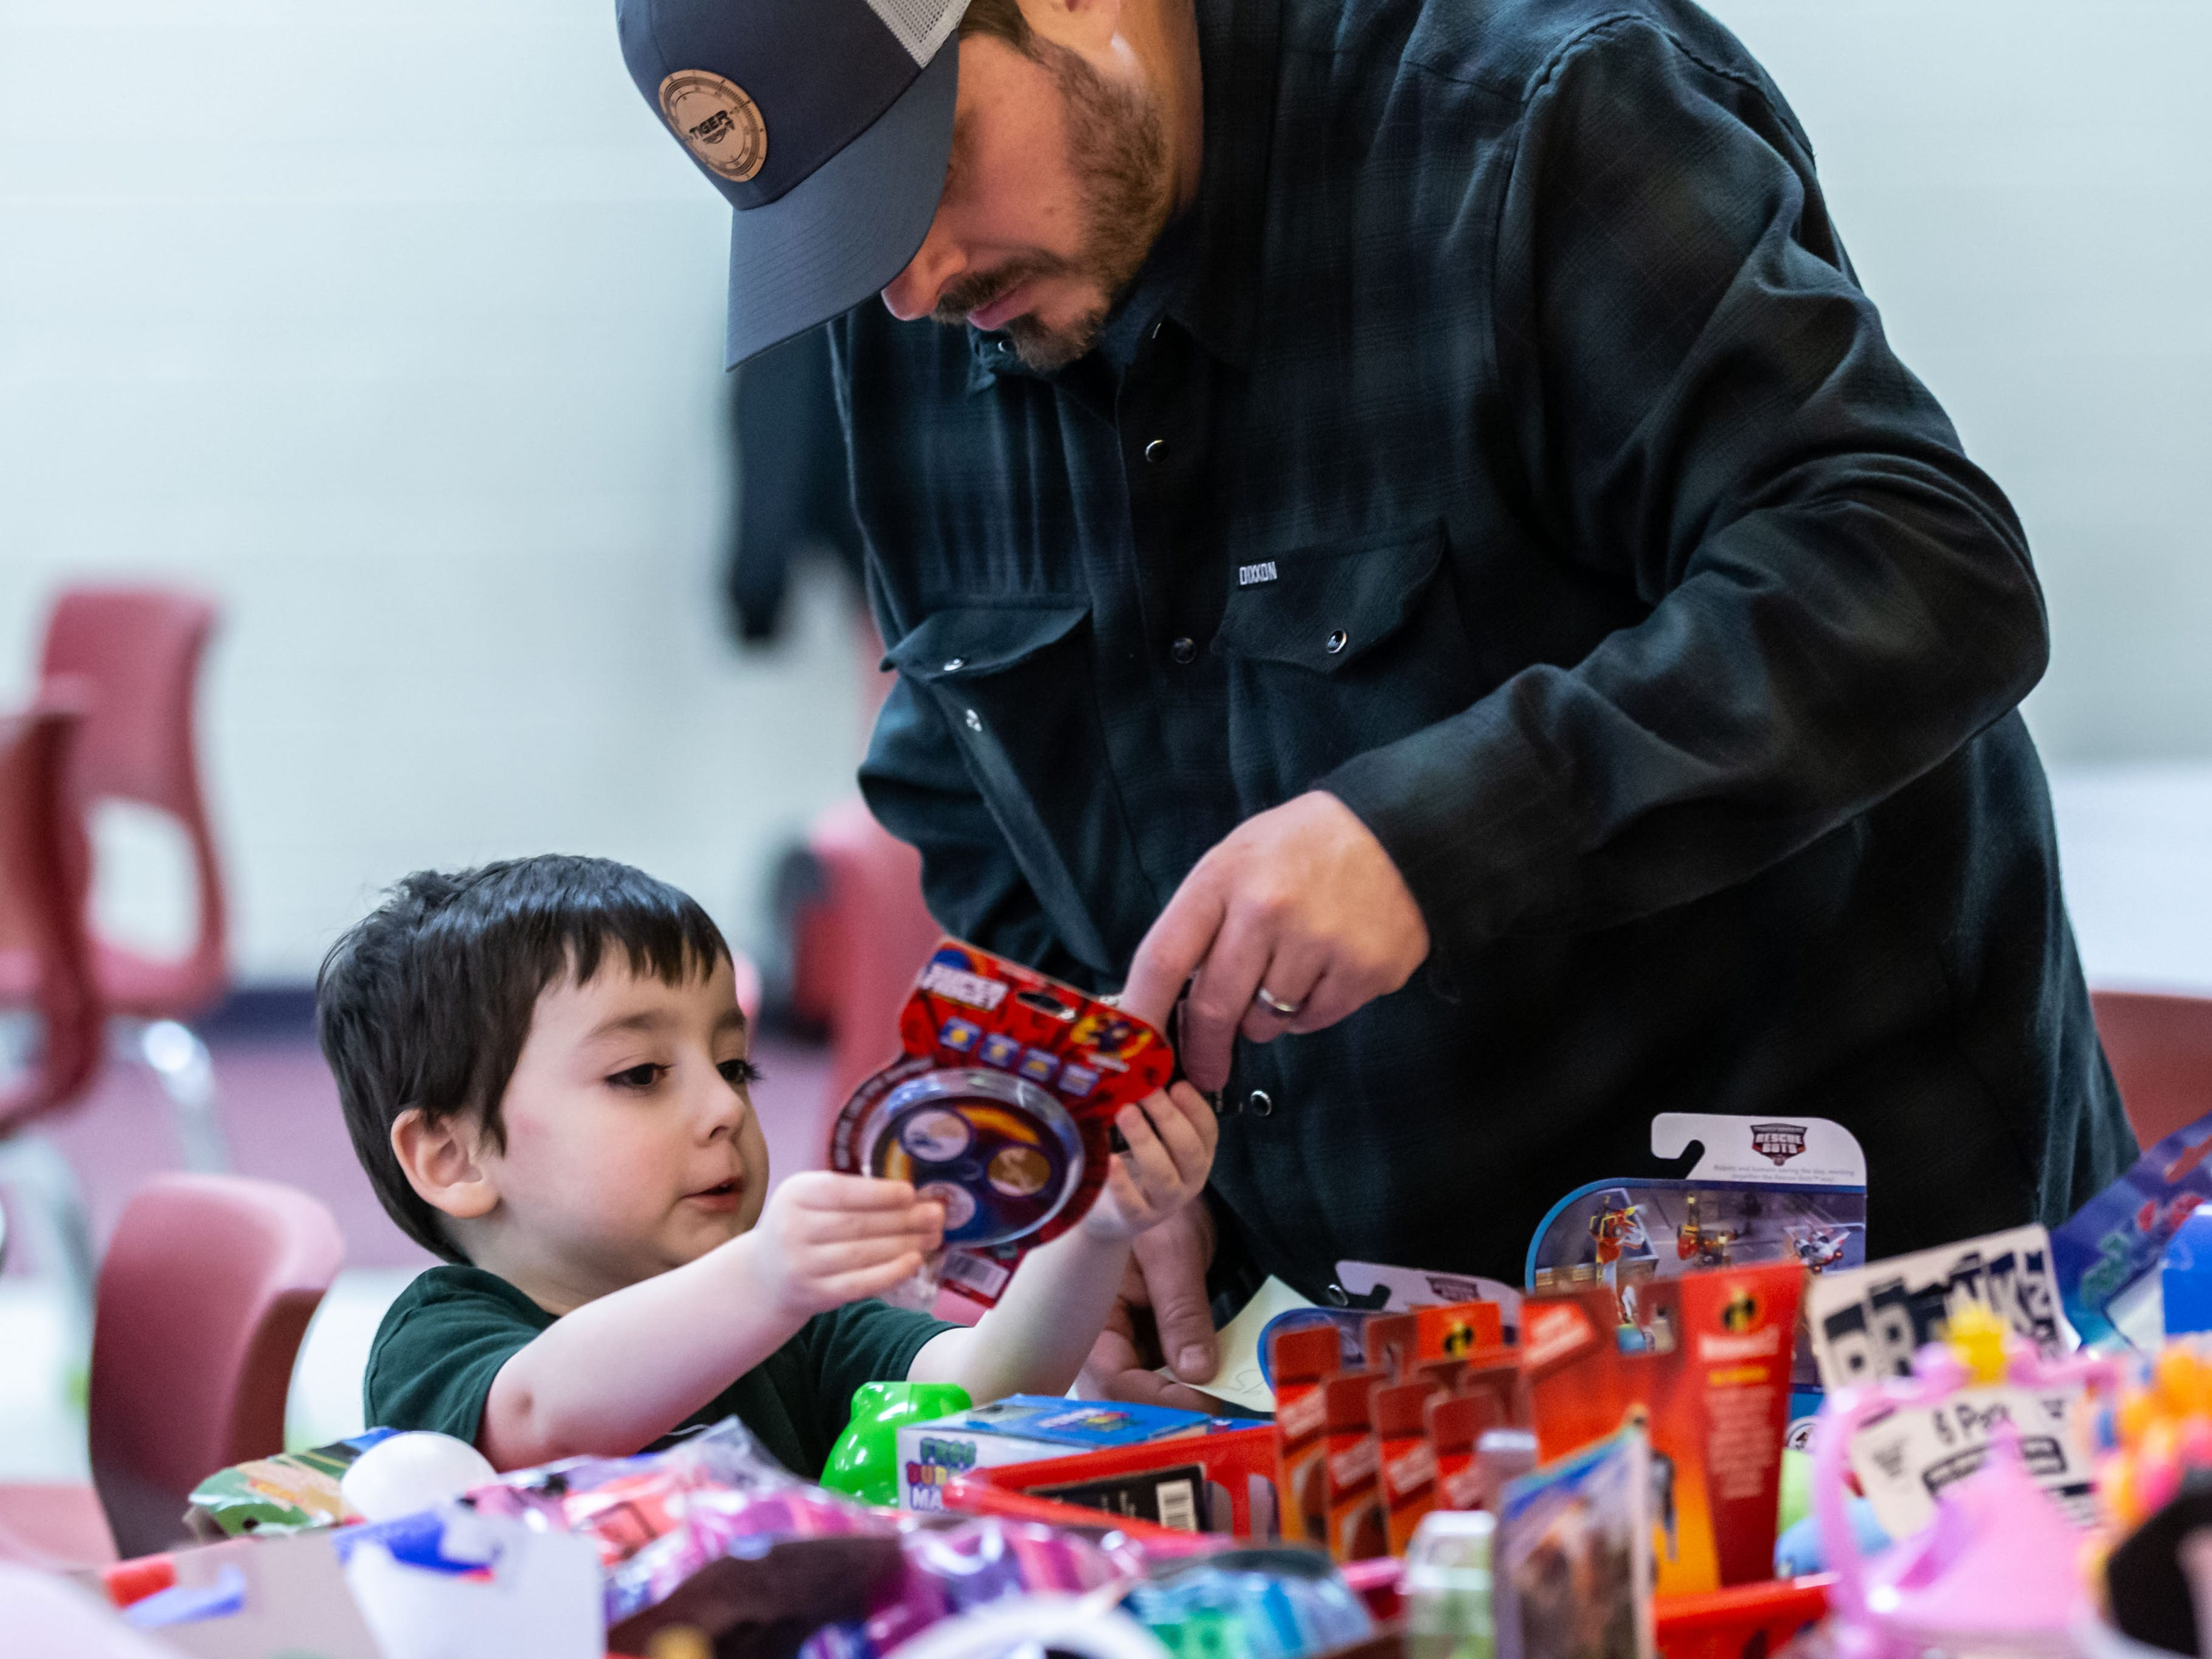 Four-year-old Abel Dettmann of Oconomowoc selects a prize with a little help from his father Dan during the 9th annual St. Joan of Arc Carnival in Nashotah on Friday, Feb. 1, 2019. The family-friendly event features carnival games, food, face painting, balloon animals, a fortune teller and more.